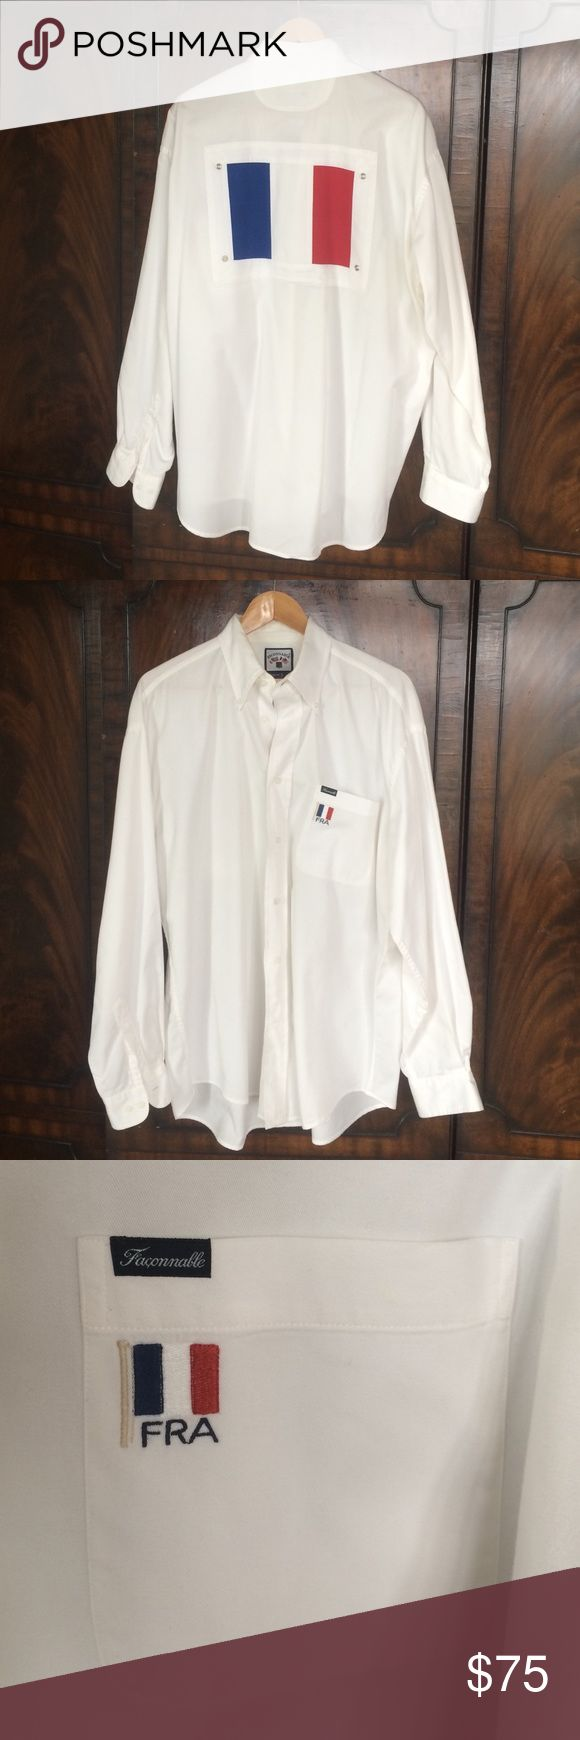 Faconnable, Luxury Men's Shirt French collection Awesome condition! Faconnable Shirts